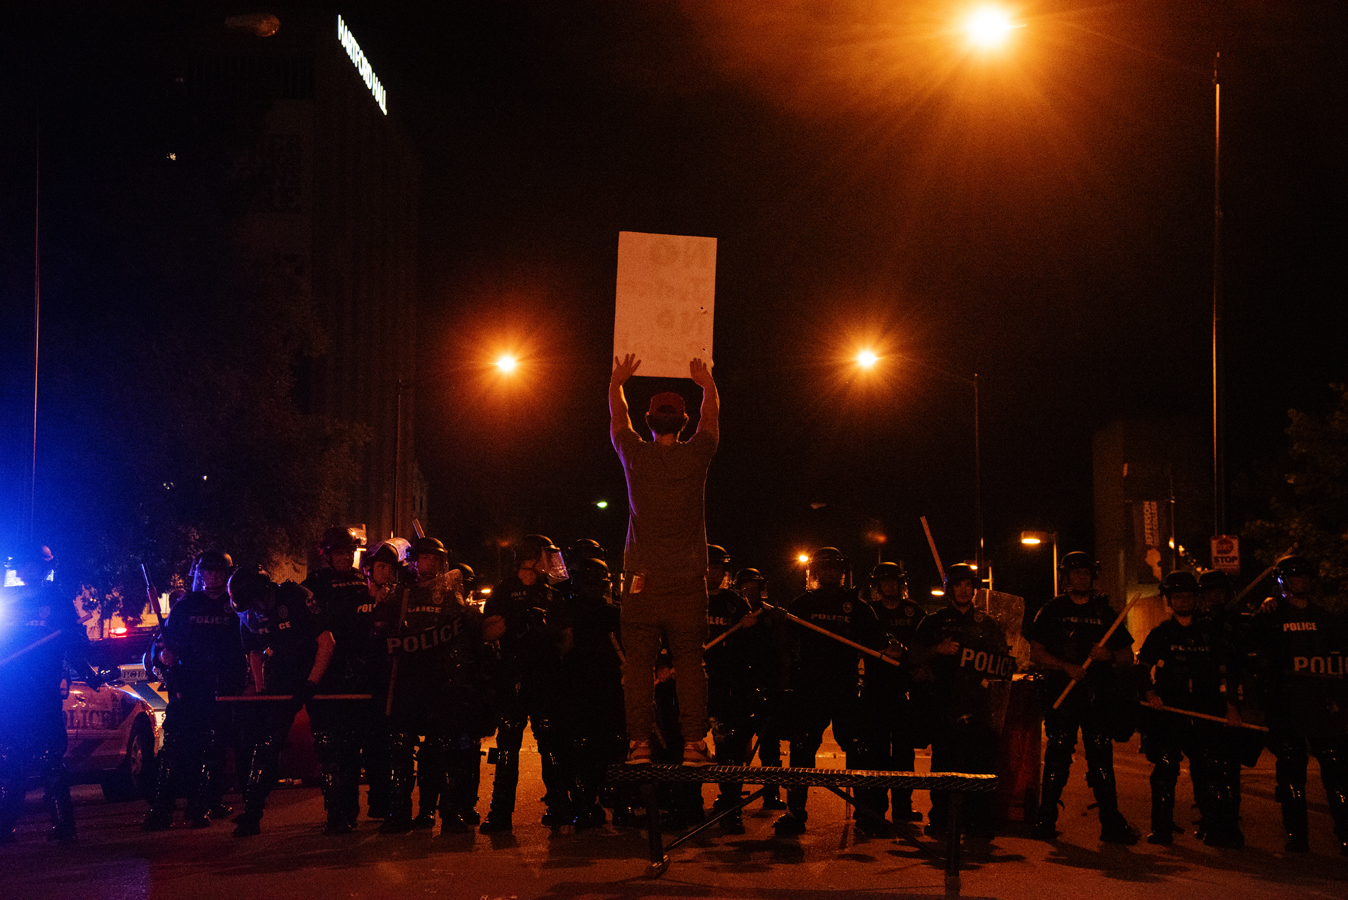 Protestors+gathered+for+a+second+night+in+downtown+Louisville+on+the+evening+of+May+29.+The+protests+were+spurred+by+the+death+of+Breonna+Taylor+at+the+hands+of+police%2C+and+lasted+into+the+night+and+early+morning.+Phrases+such+as+%E2%80%9Cno+justice%2C+no+peace%E2%80%9D+were+shouted+by+crowd+members.+Vandals+broke+windows+of+buildings%2C+police+cars%2C+and+spray+painted+on+walls+across+downtown.+The+police+used+tear+gas+and+rubber+bullets+on+protestors.+Further+protests+are+planned+for+the+evening+of+Saturday%2C+May+30.